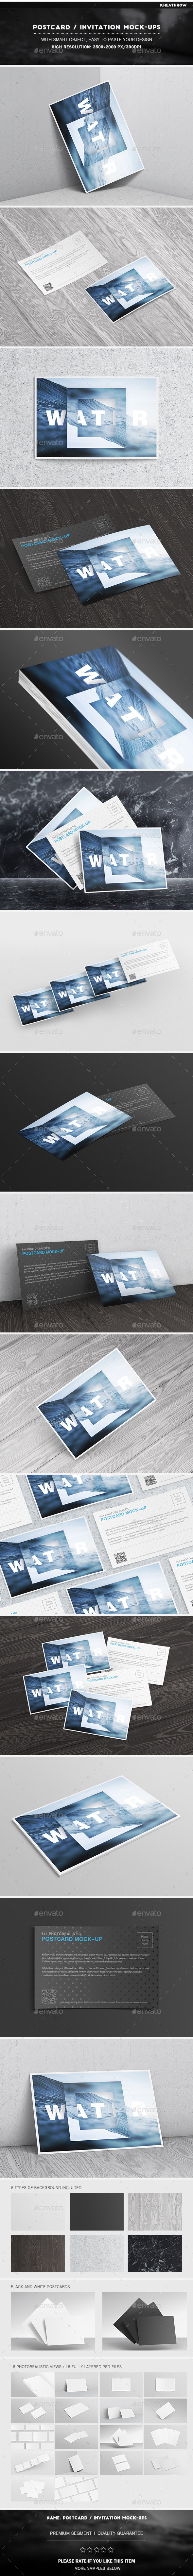 graphicriver_postcard__invitation_mock_ups_15597544